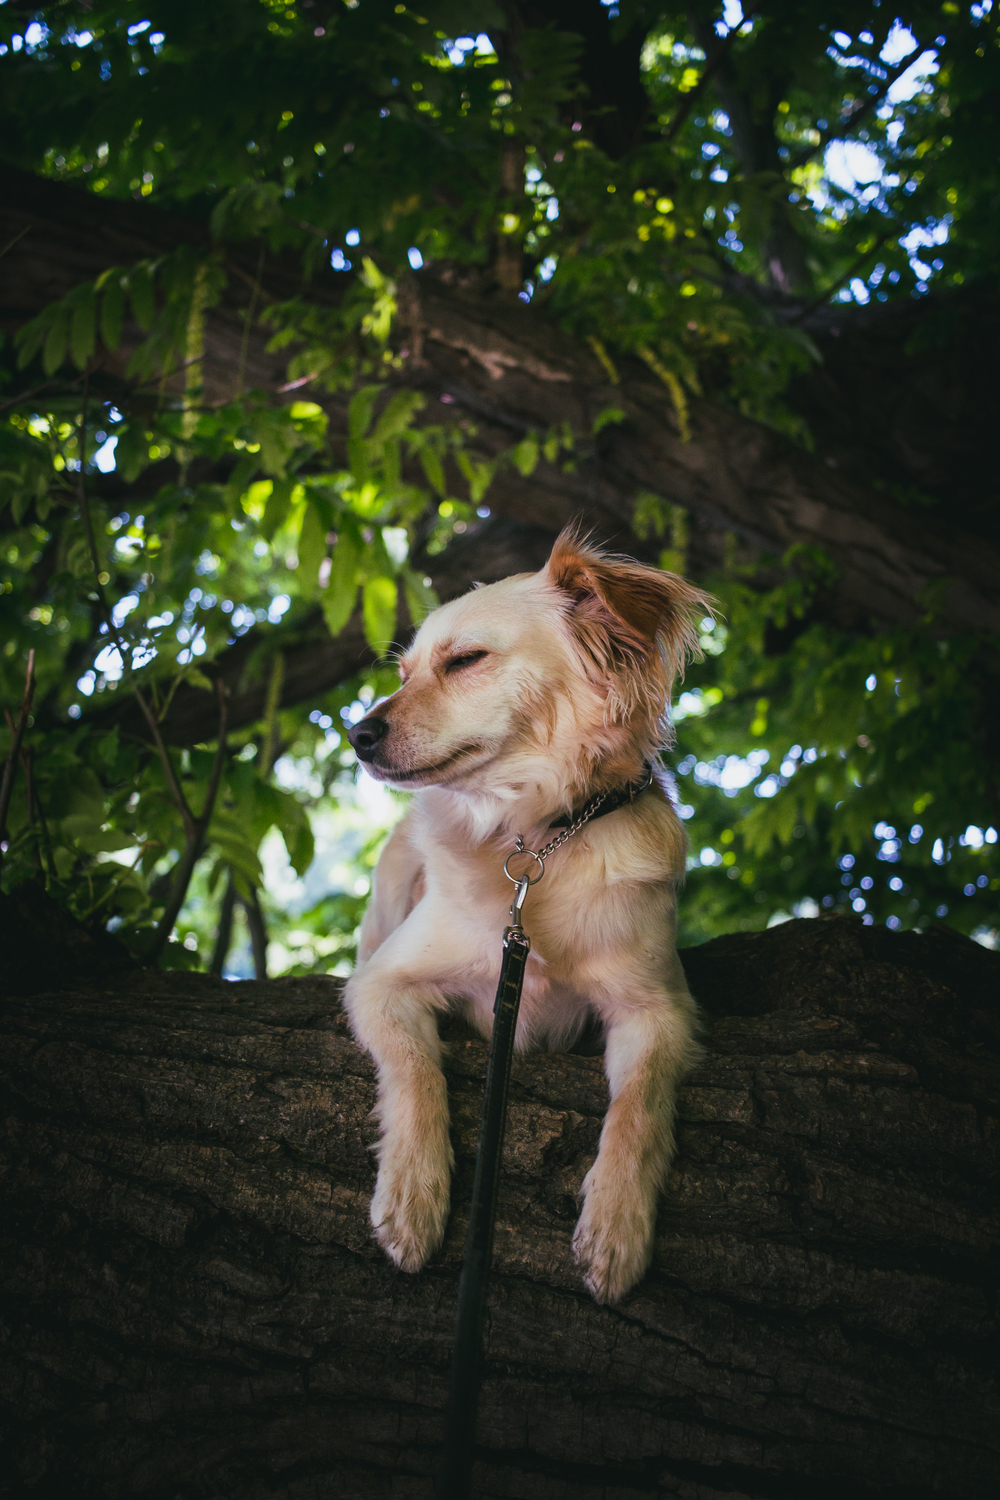 Dog in a giant tree. :)